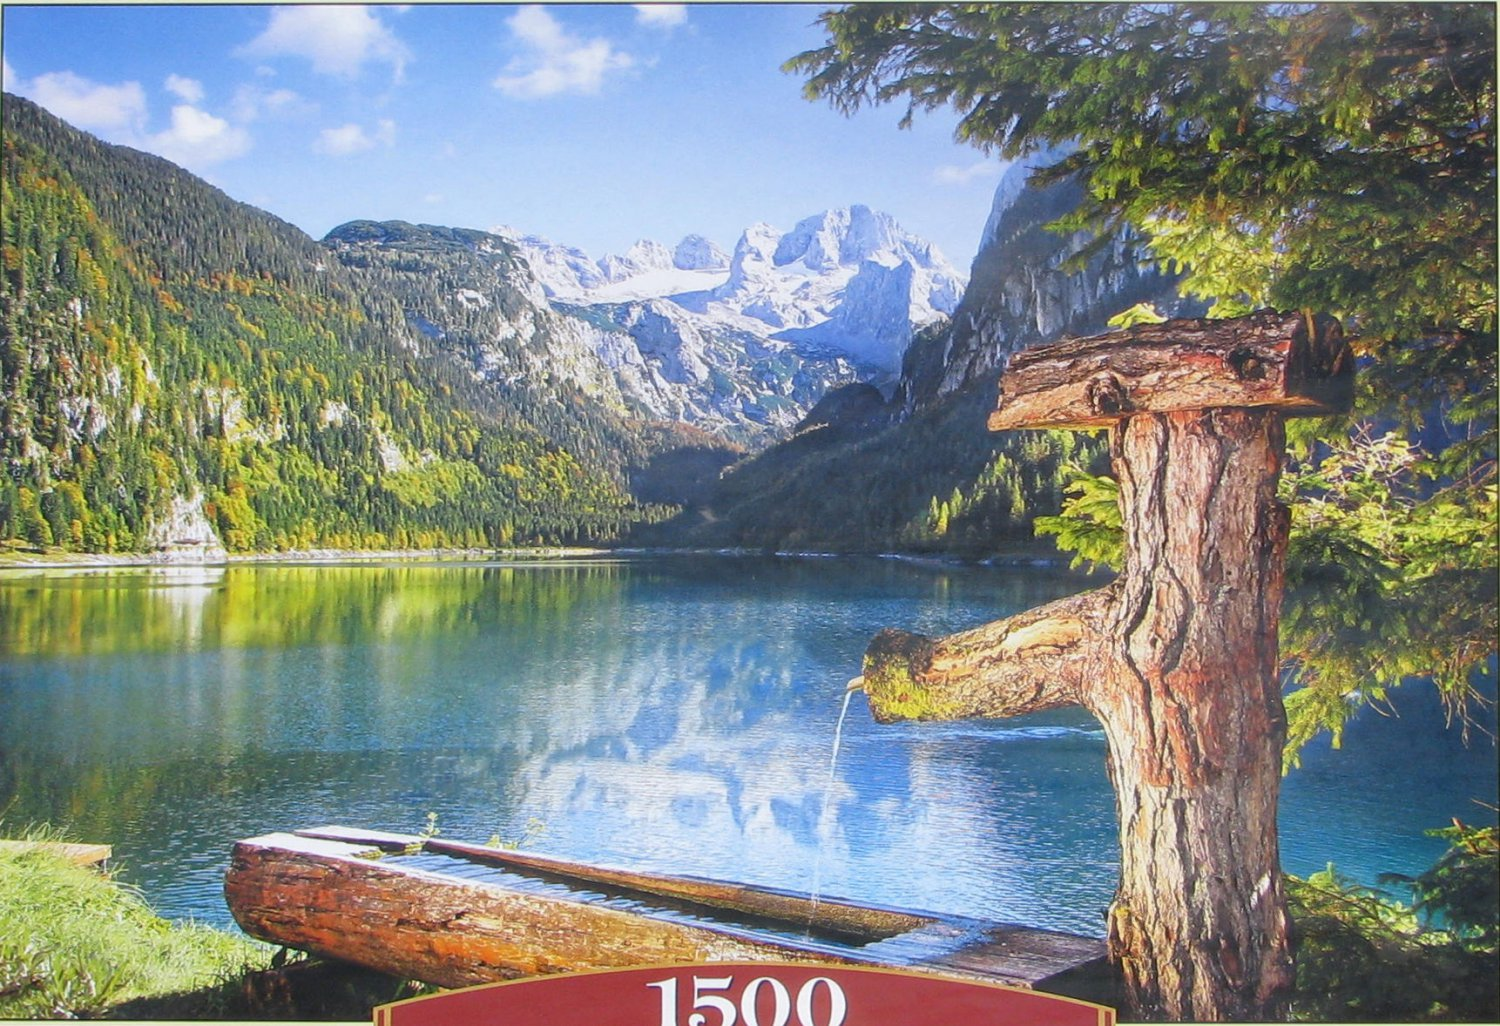 Castorland GOAUSEE GERMANY 1500 pc Jigsaw Puzzle